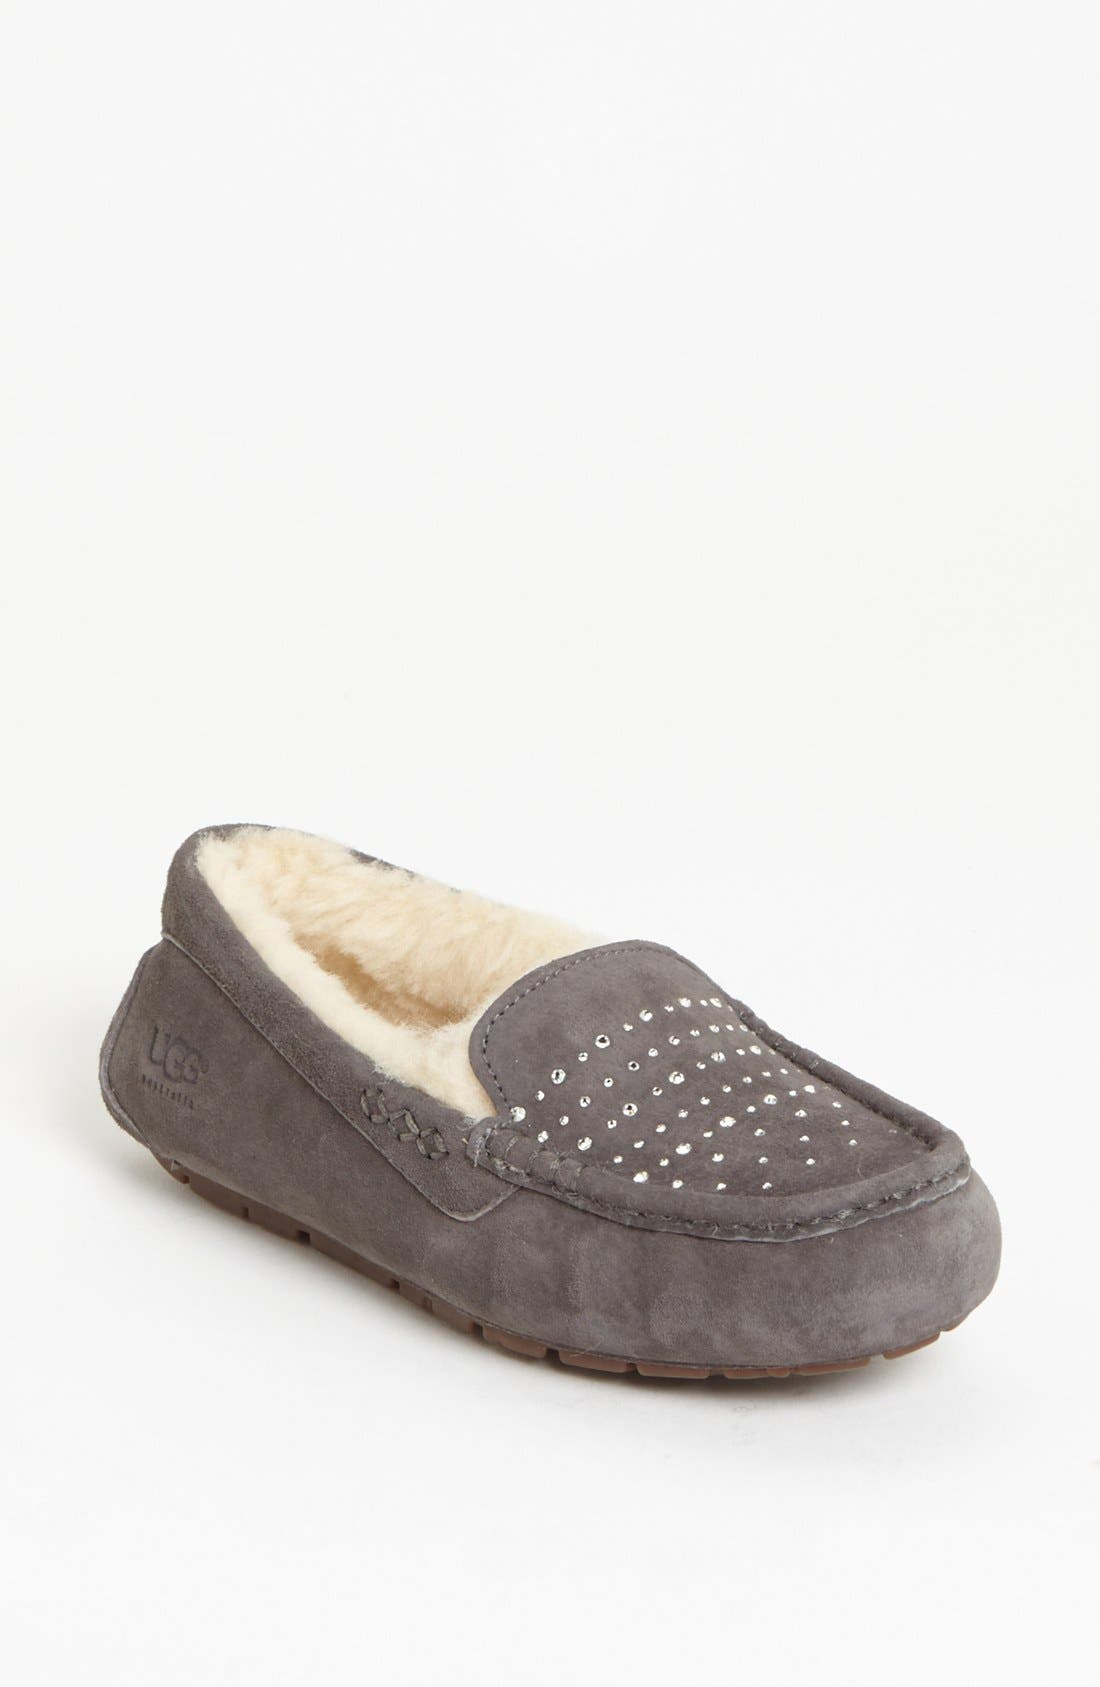 Main Image - UGG® Australia 'Bling' Slipper